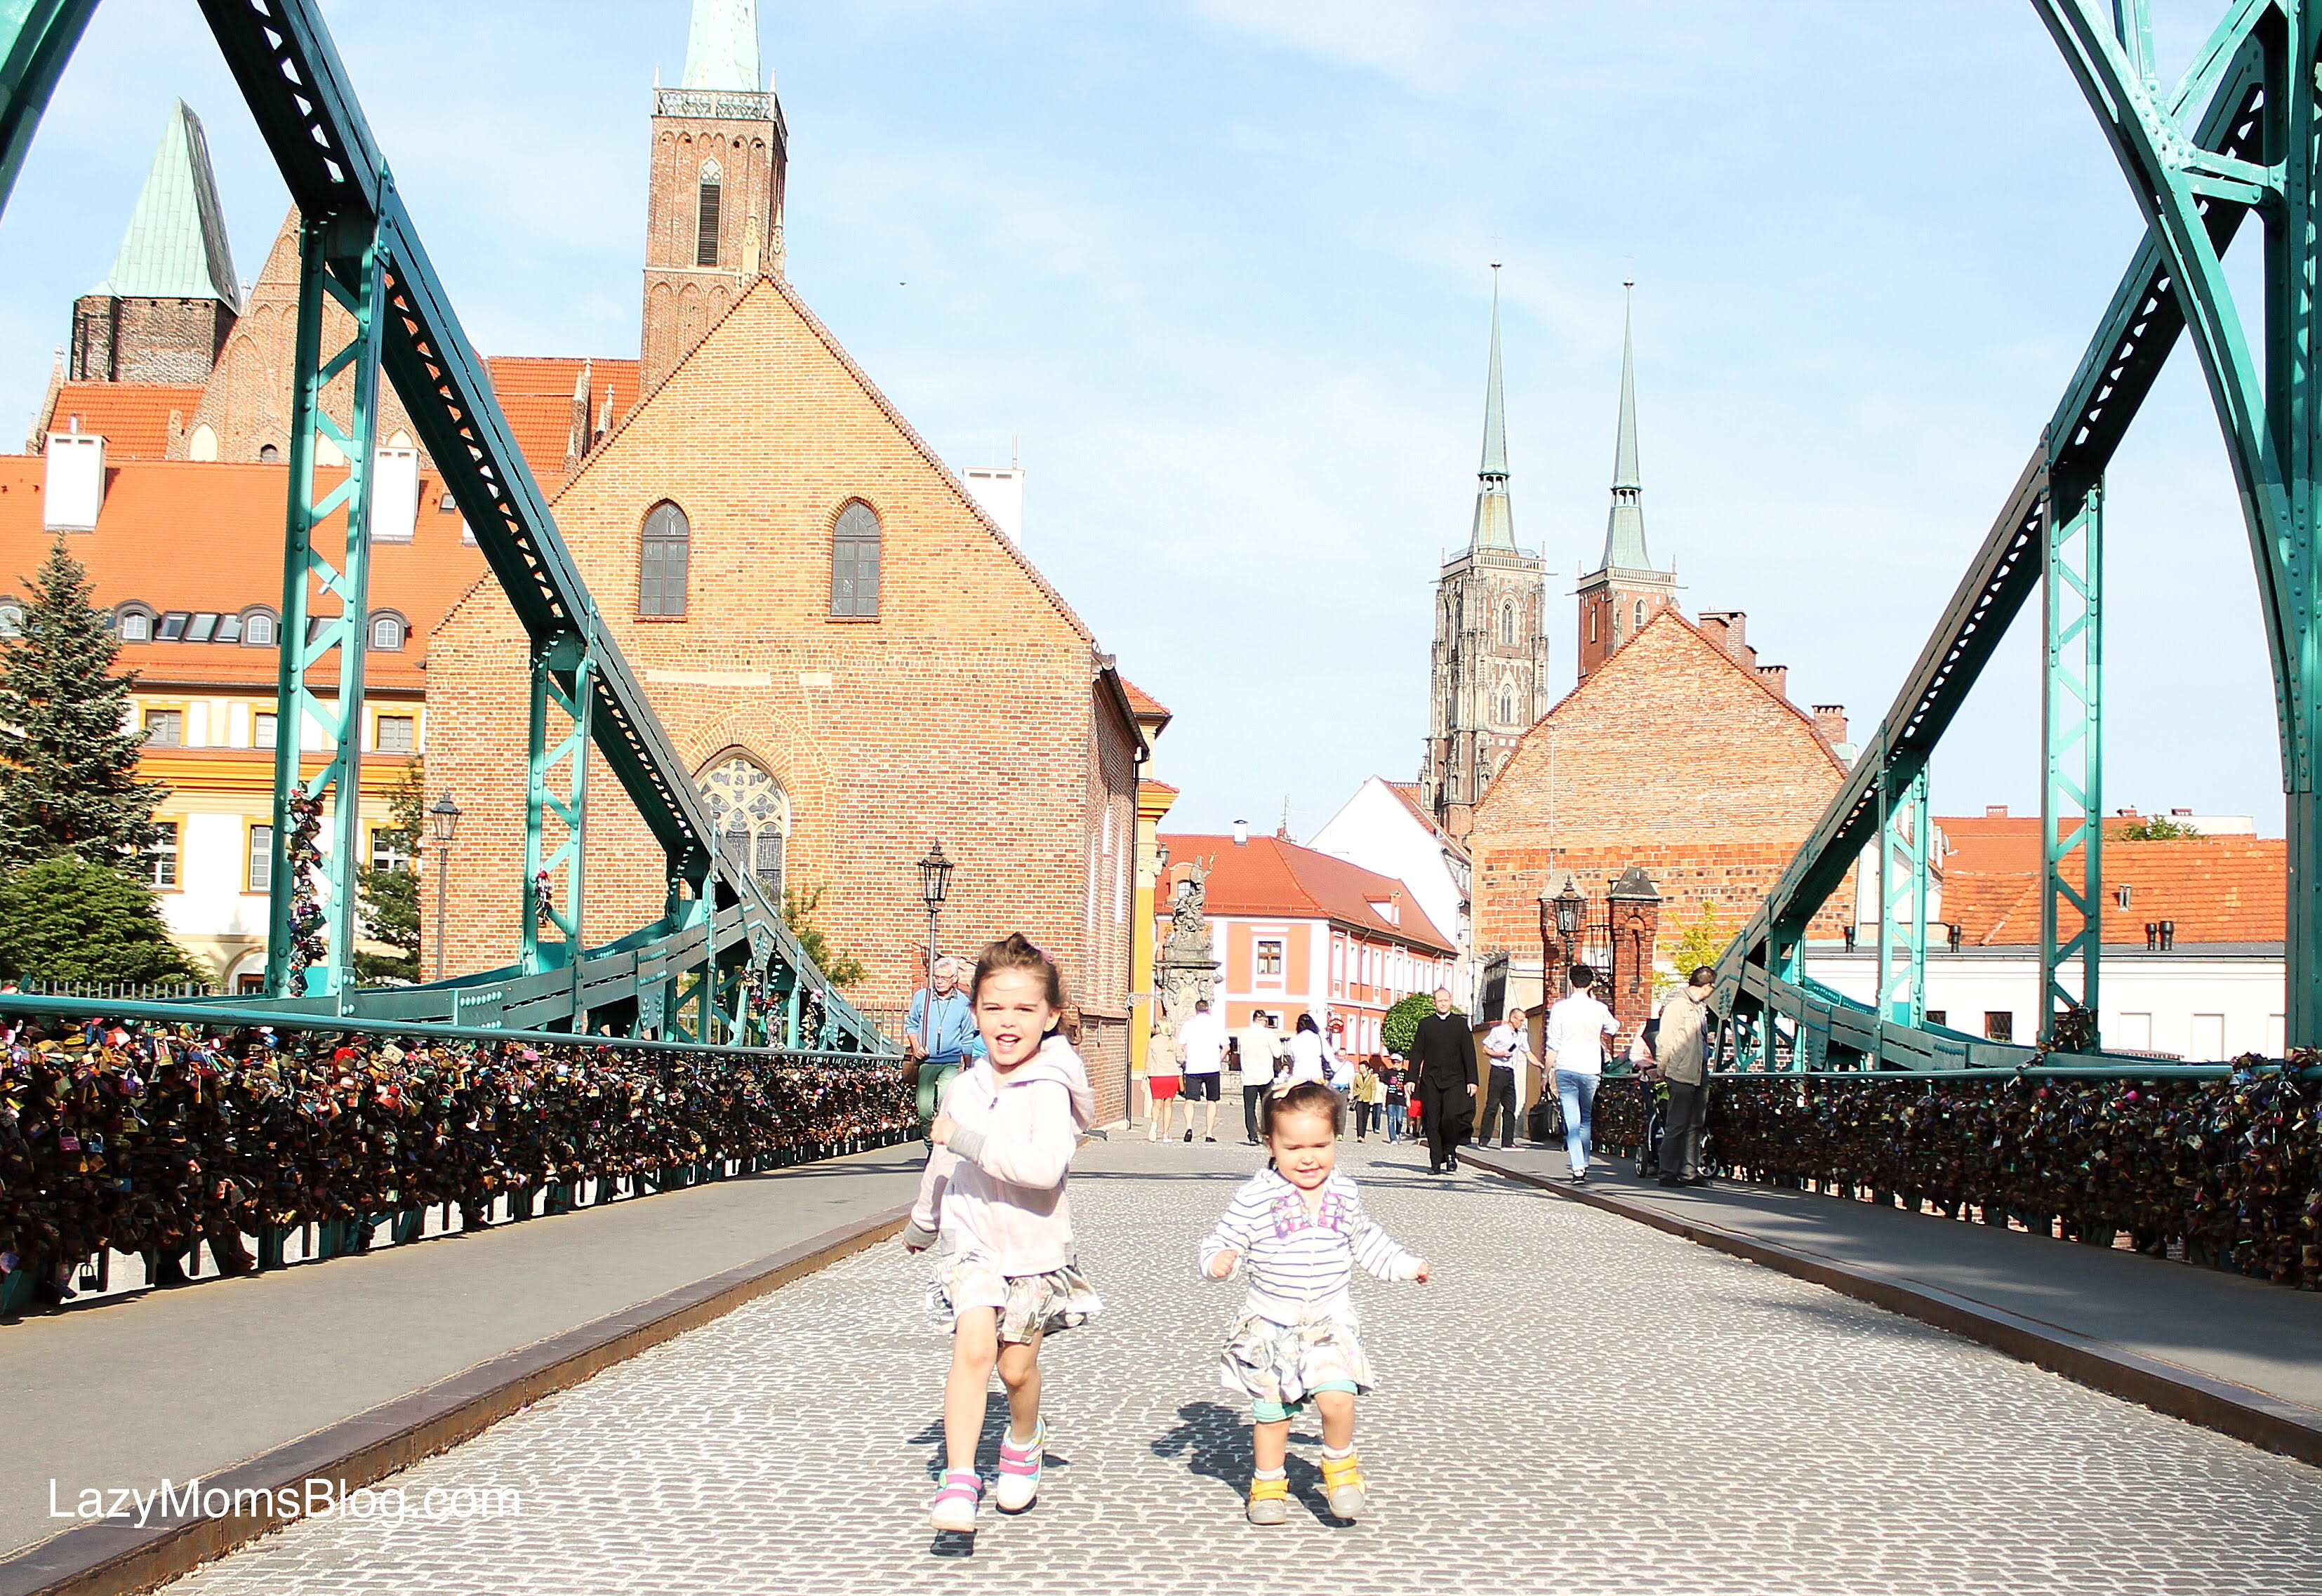 10 reasons to travel to Lower Silesia